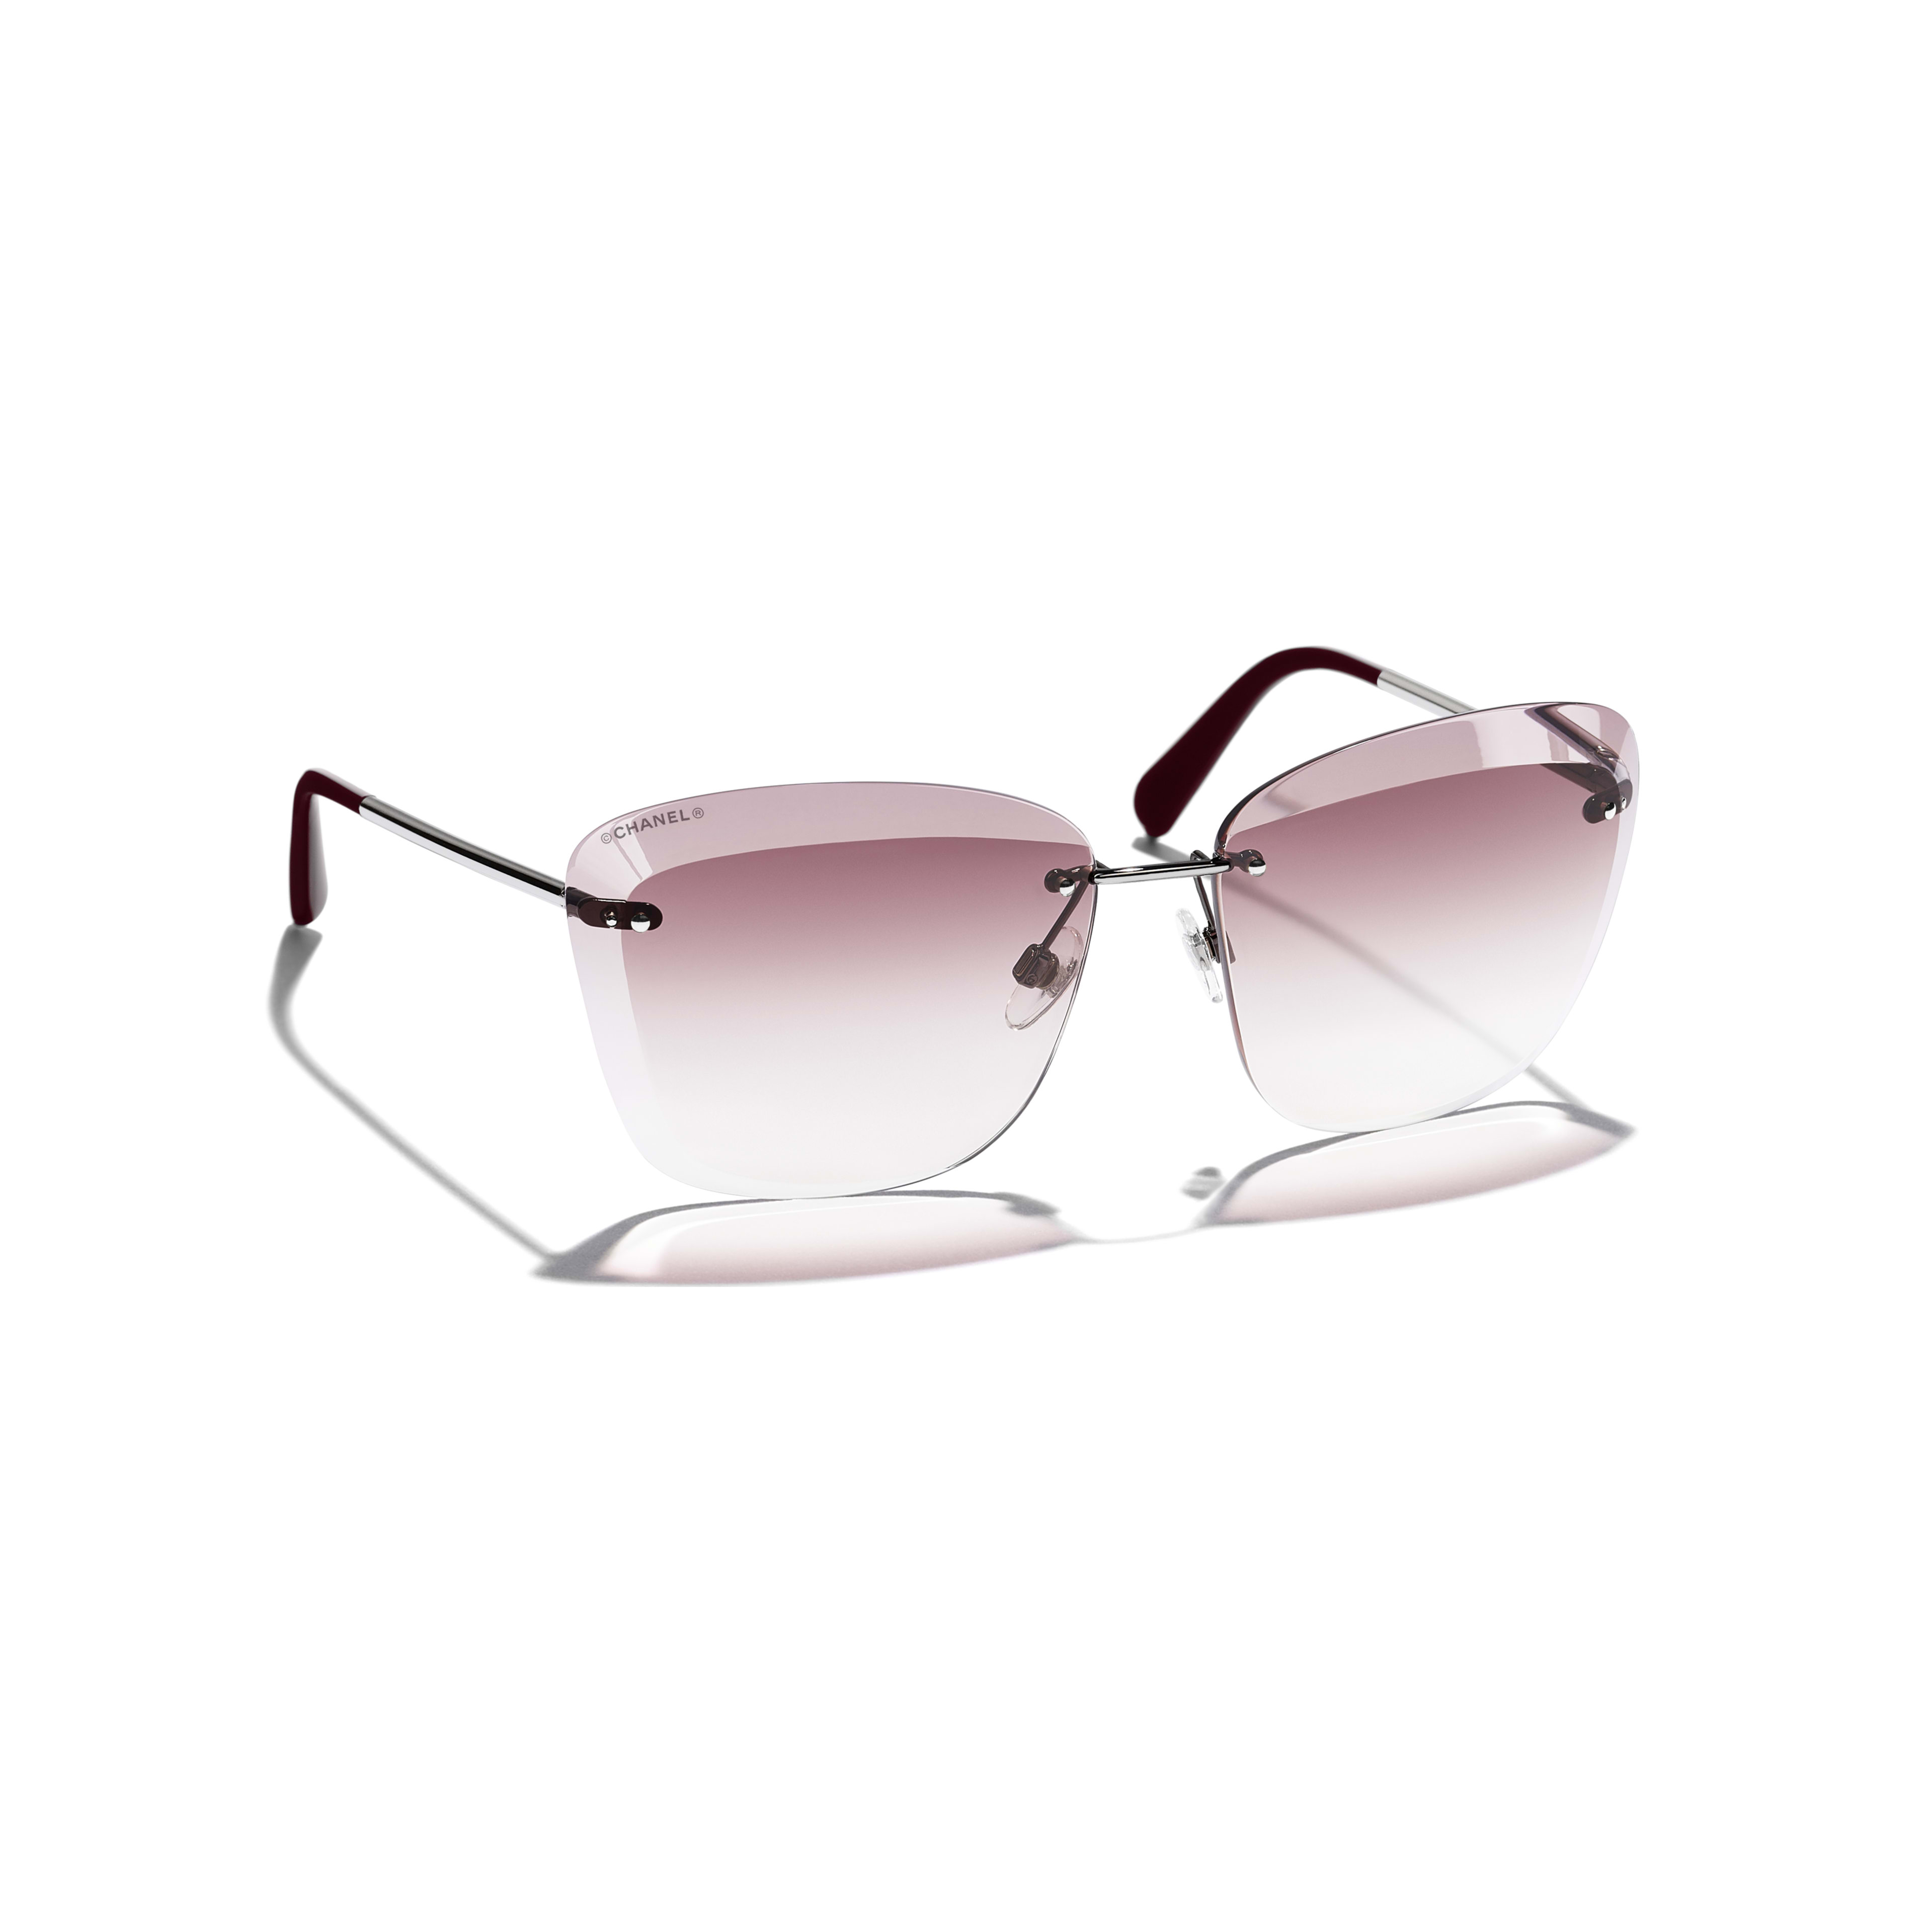 Butterfly Sunglasses Metal Silver & Pink -                                                               view 1 - see full sized version